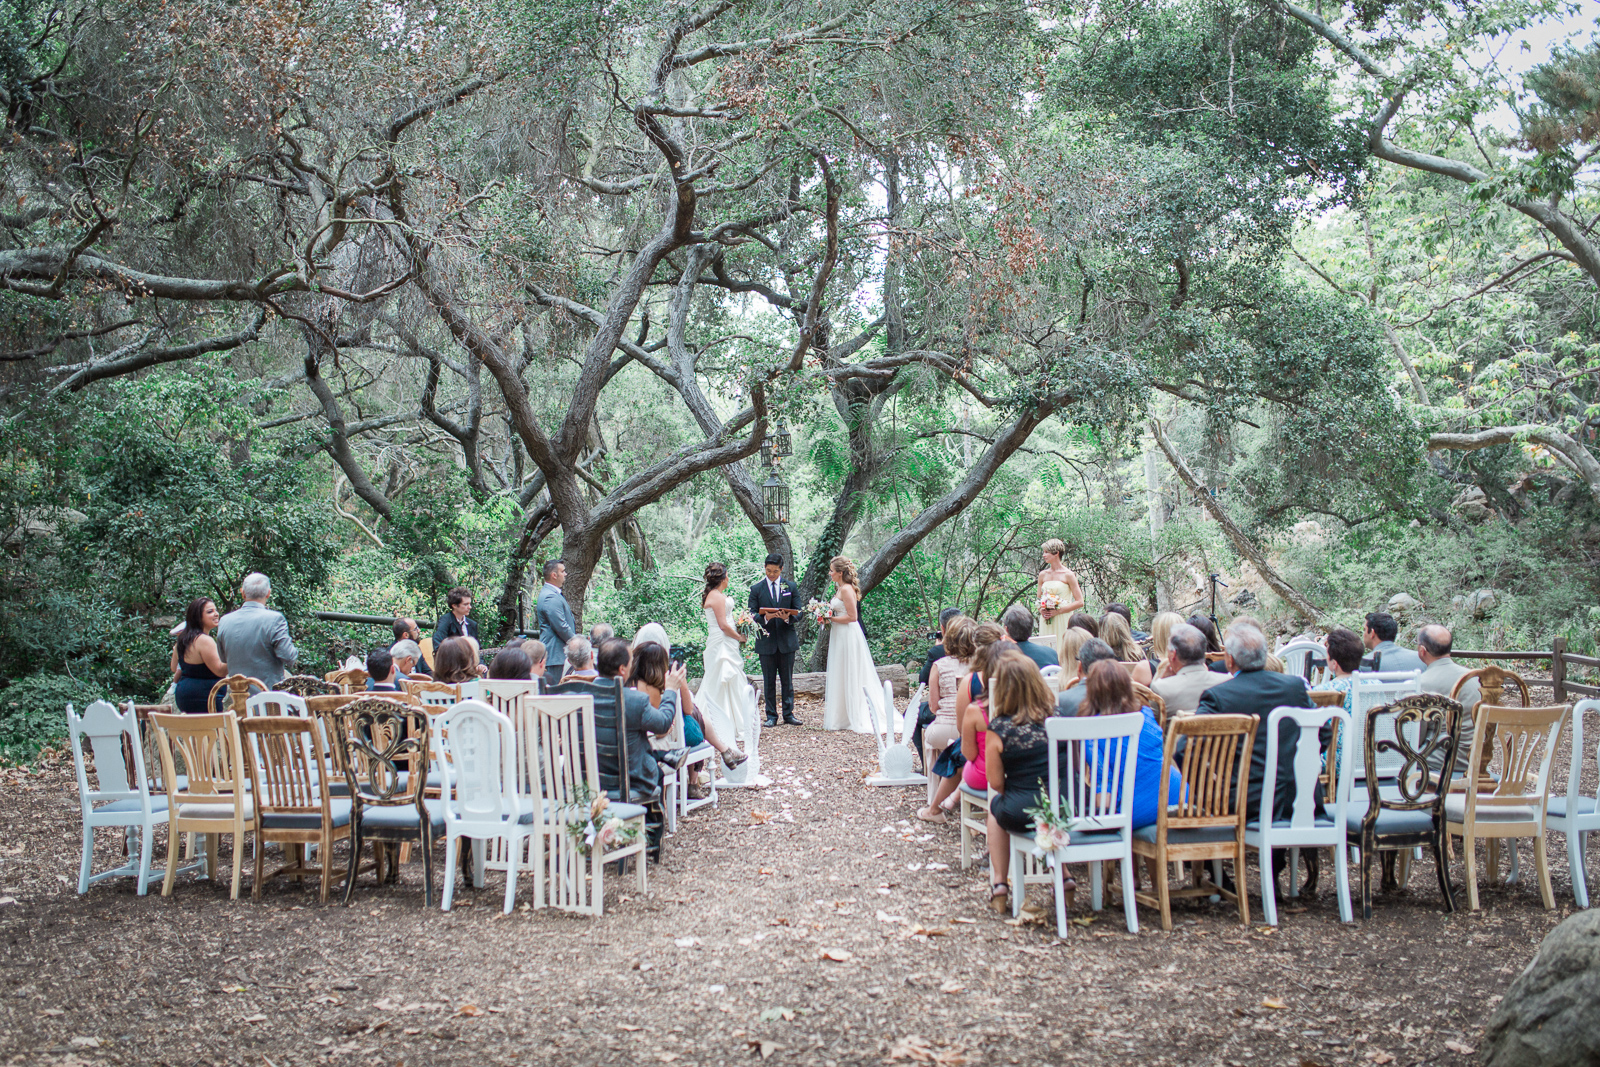 Two brides on during their wedding ceremony in Santa barbara - Beautiful bridal portrait of two brides on their wedding day in Santa barbara - gay weddings